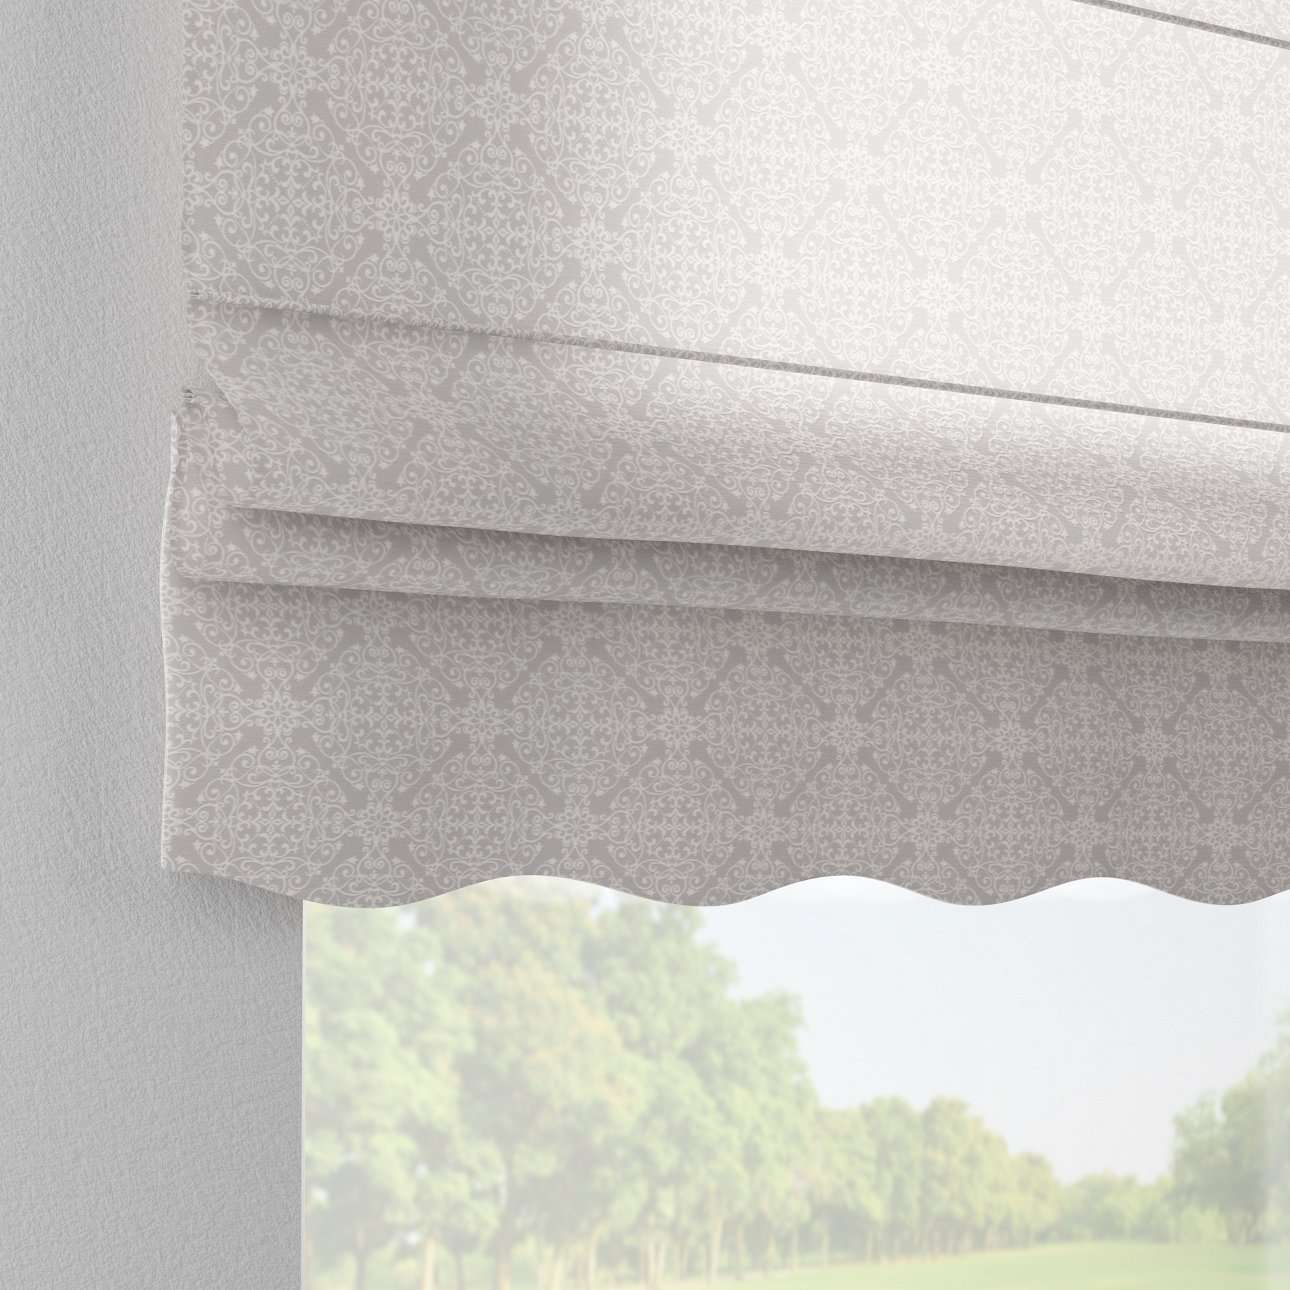 Florence roman blind  80 x 170 cm (31.5 x 67 inch) in collection Flowers, fabric: 140-38